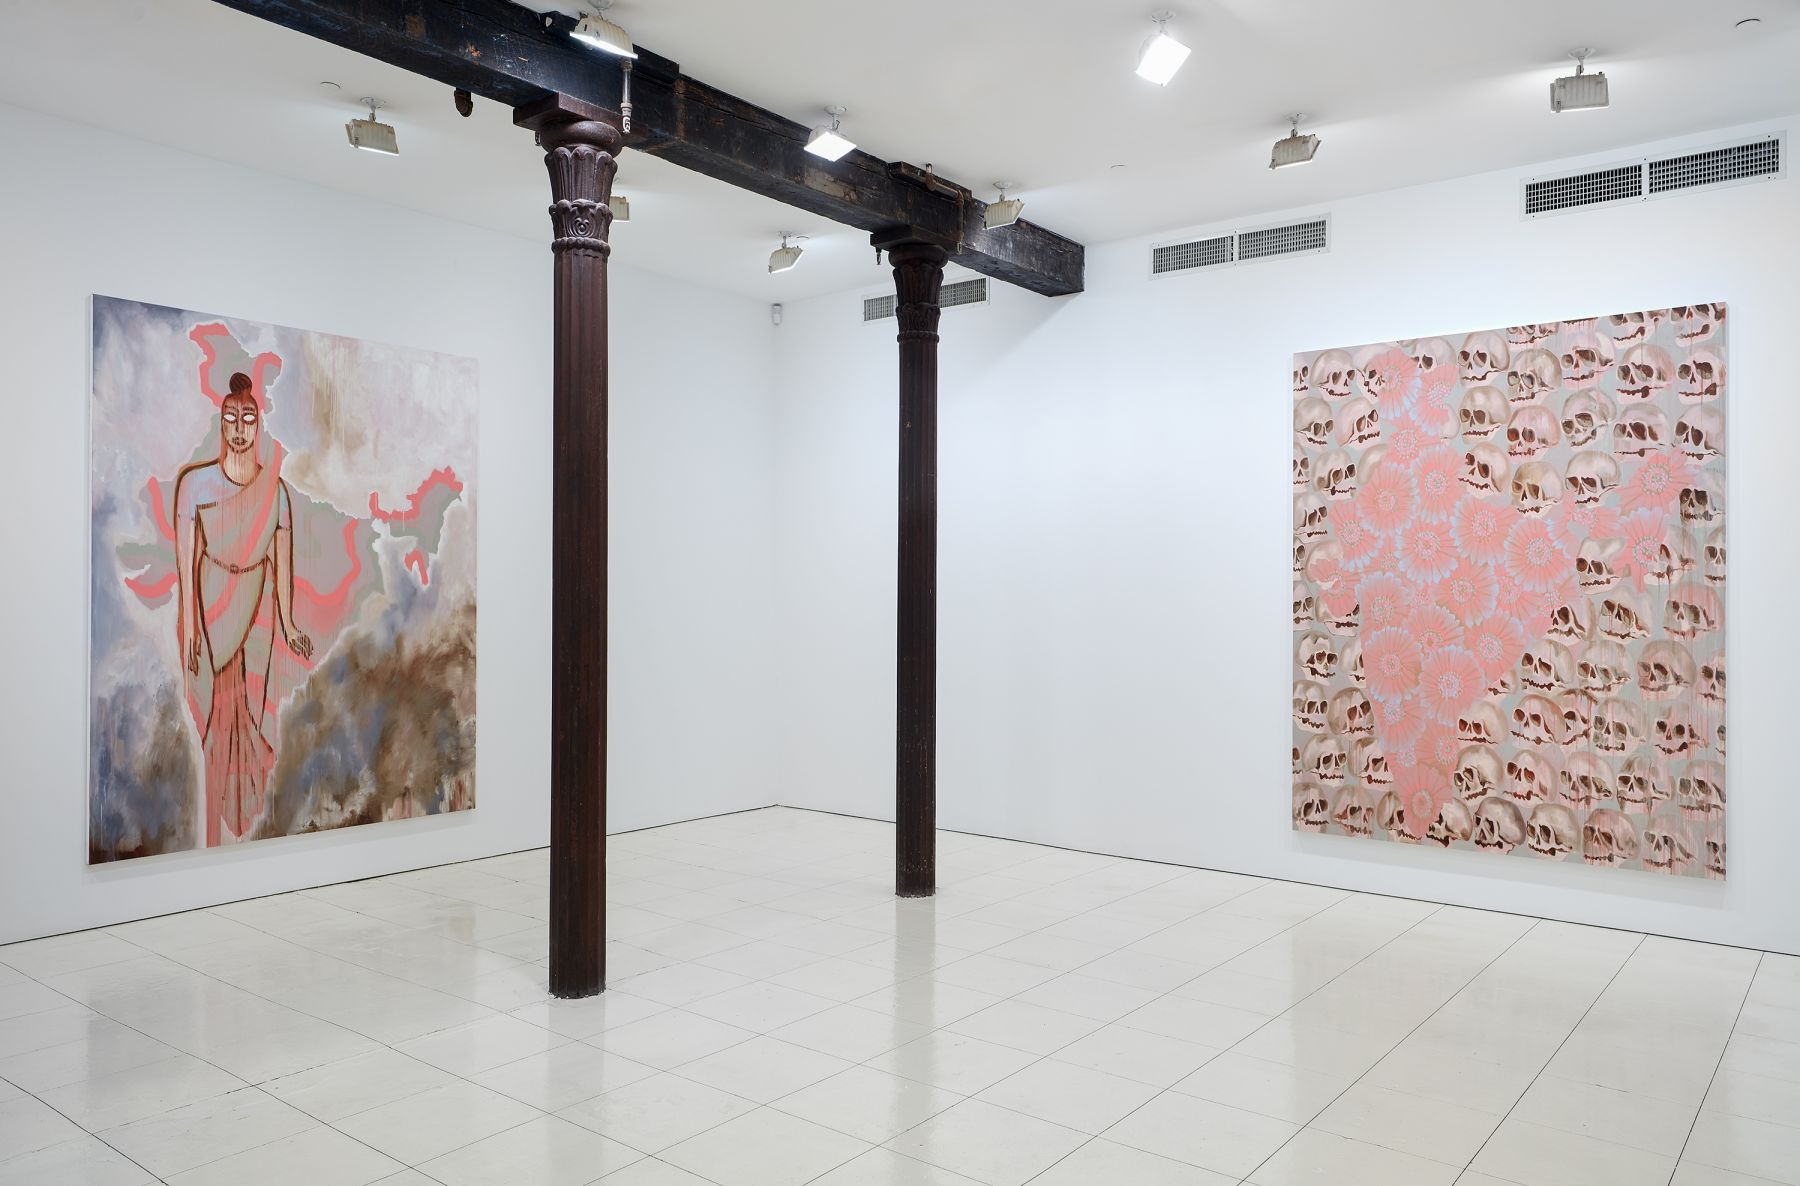 Installation view: Francesco Clemente: India, Vito Schnabel Projects, New York, 2019